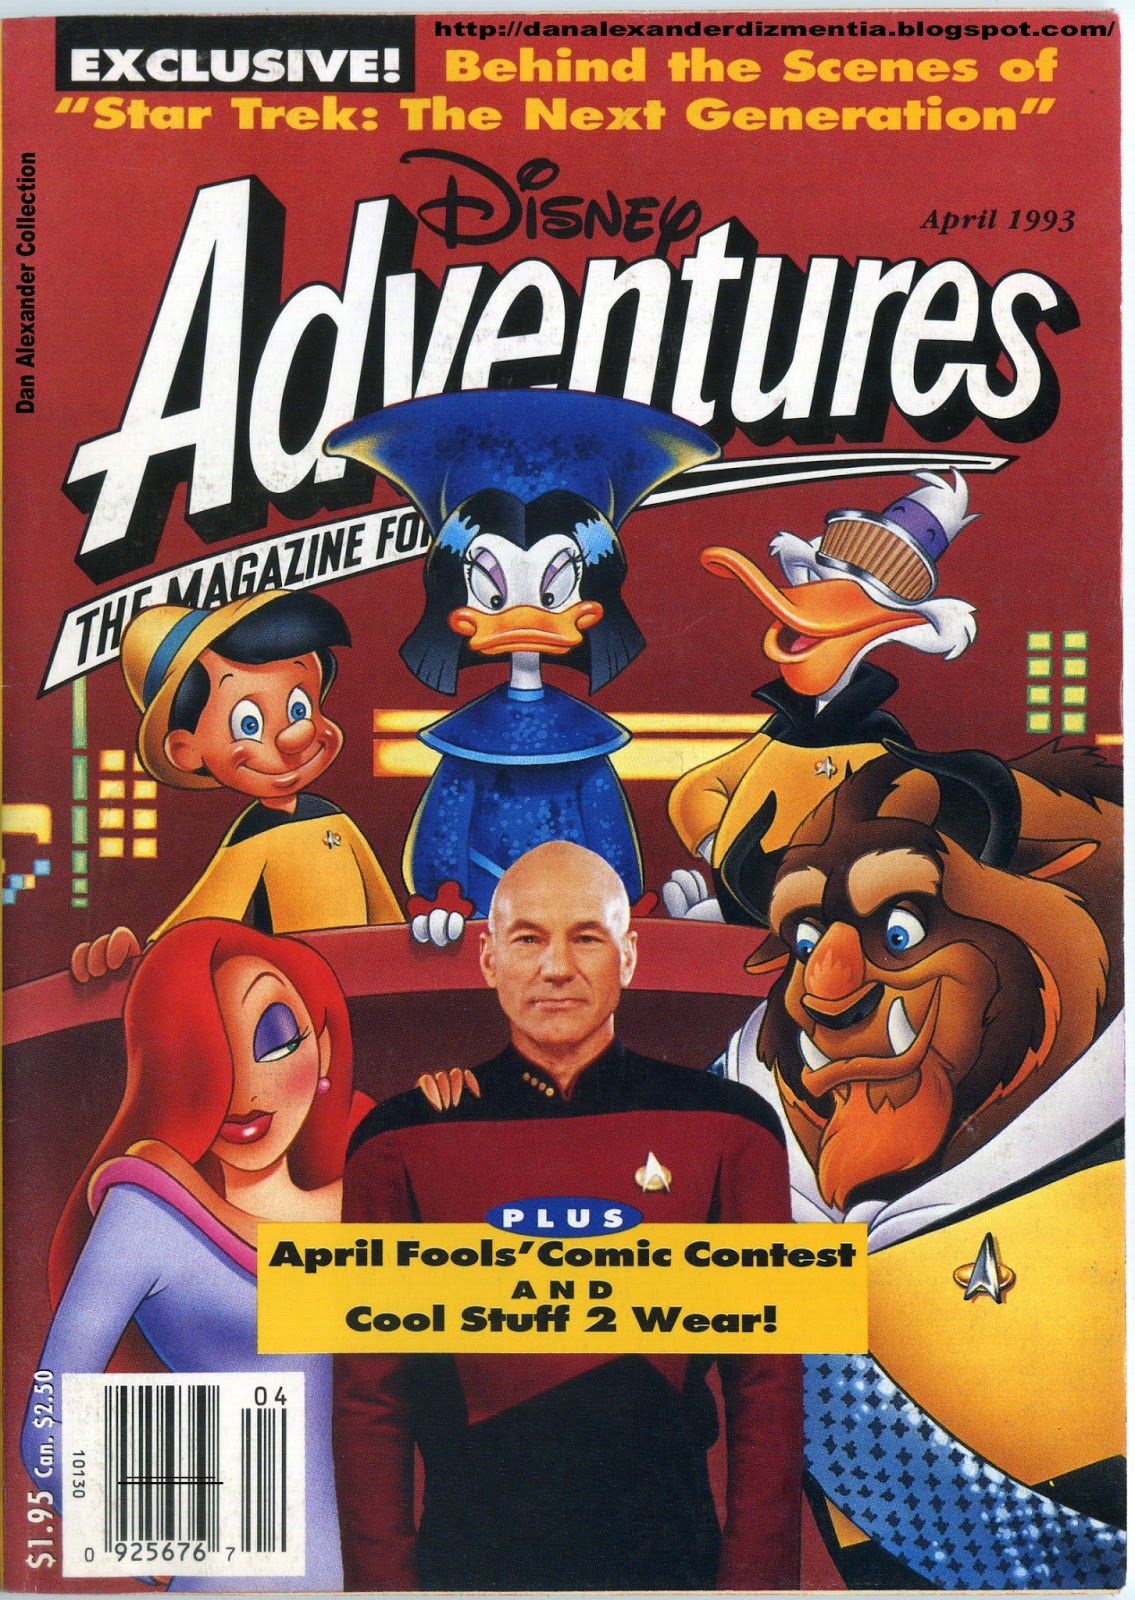 I DEFINITELY had this as a kid. Disney Adventures: getting your parents to pay for a magazine subscription that was really just a big Disney advertisement since 1990.